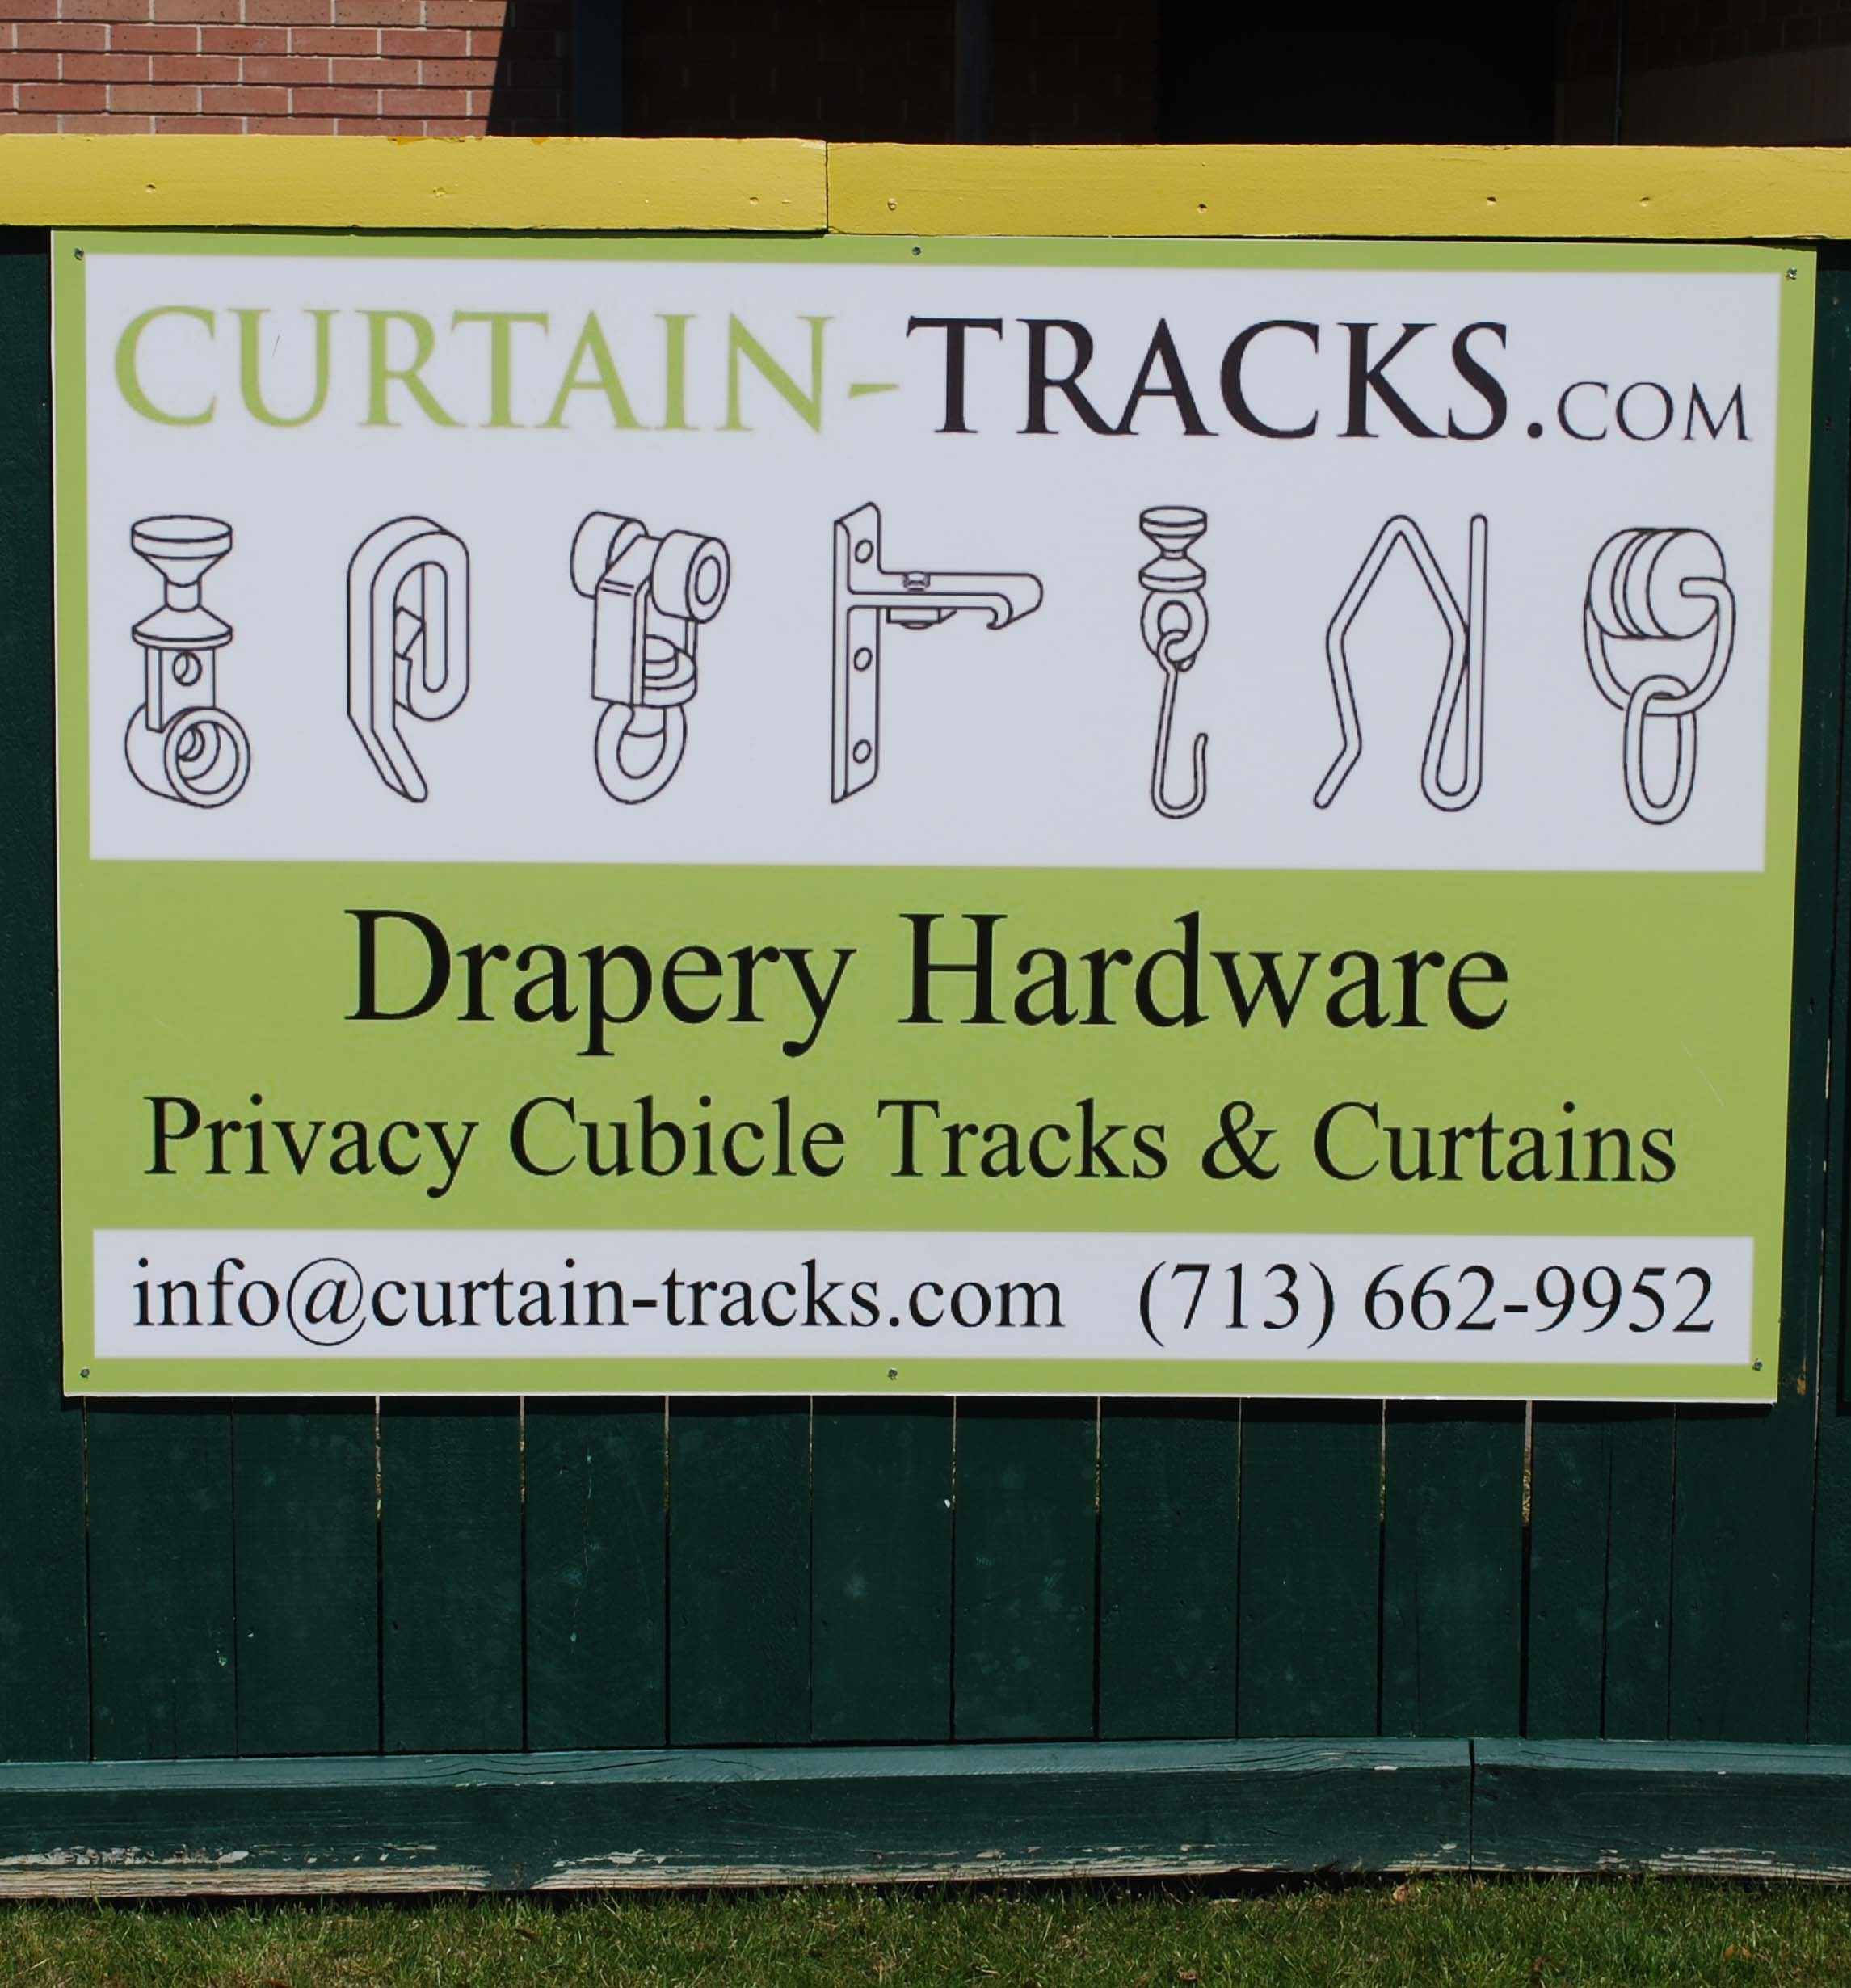 Curtain-Tracks.com Sponsors Little League Baseball